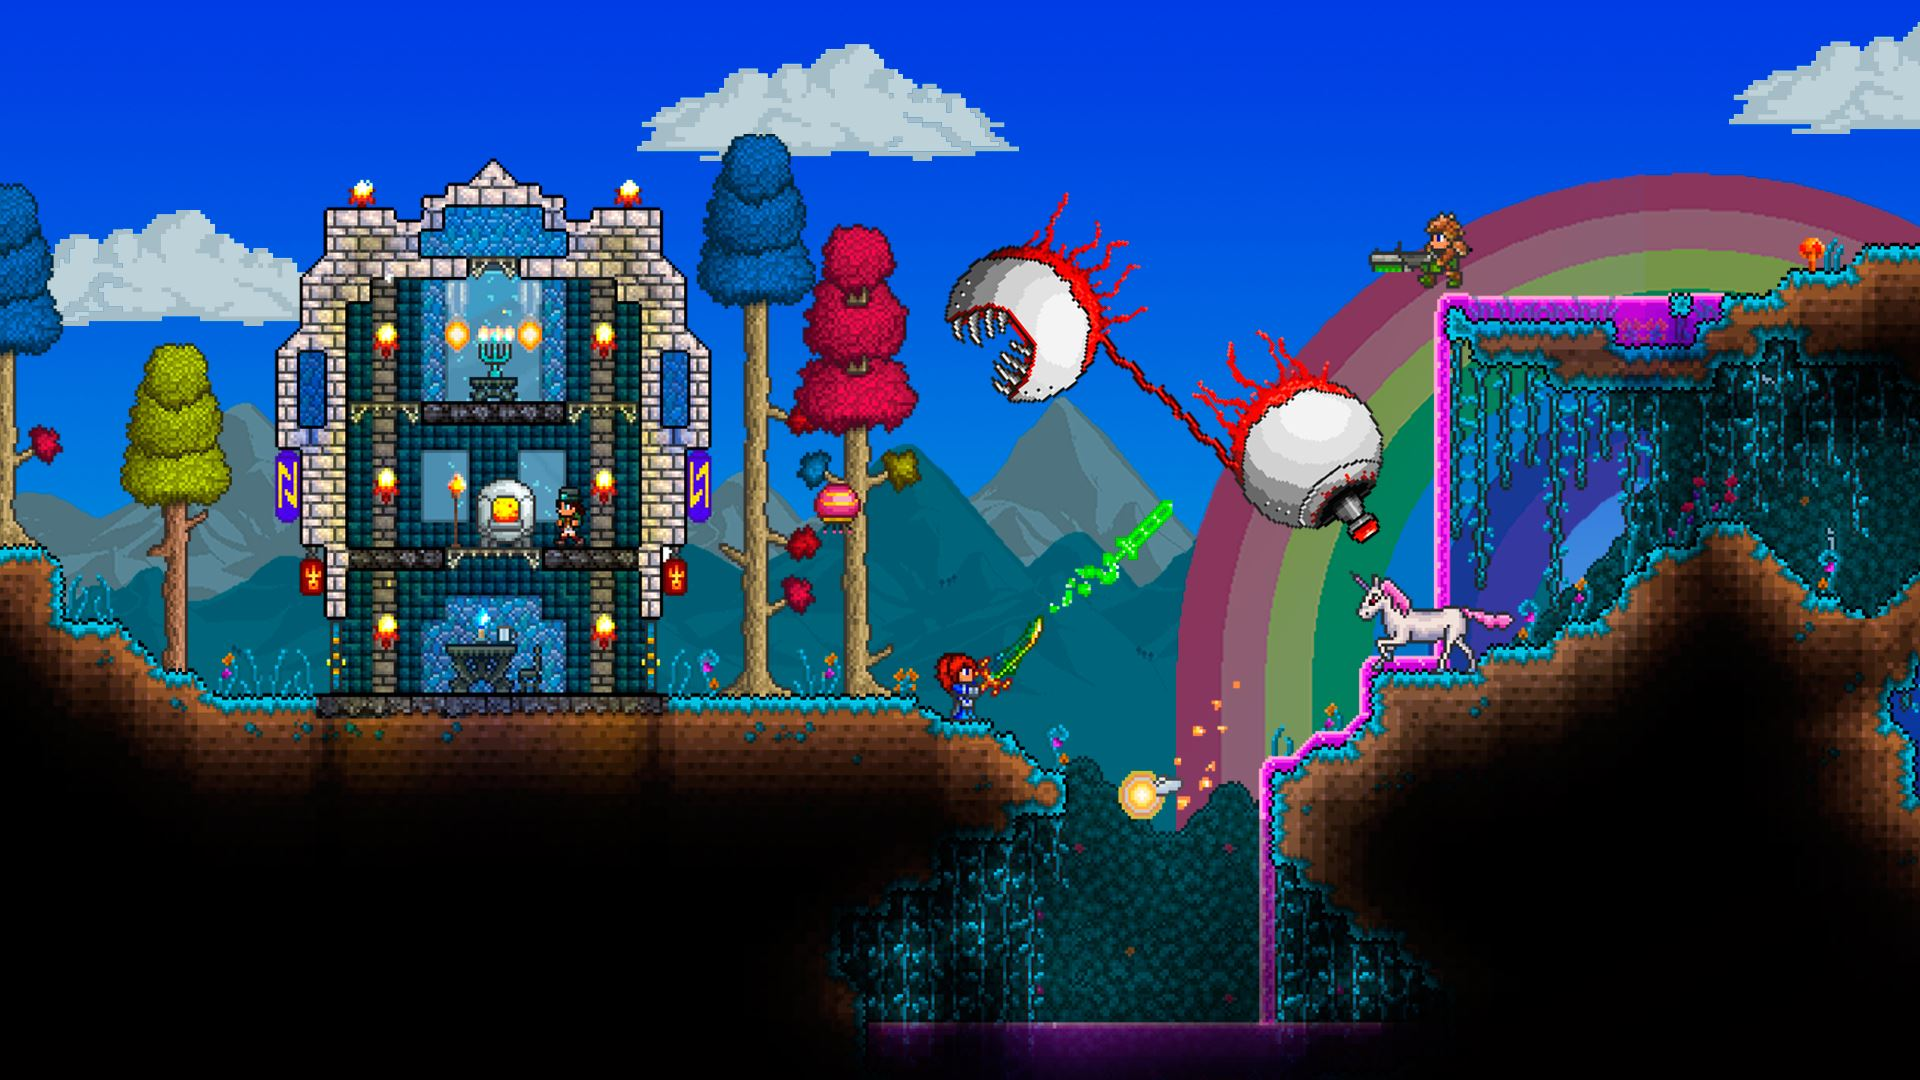 Terraria (Steam Key/Gift, Region Free)